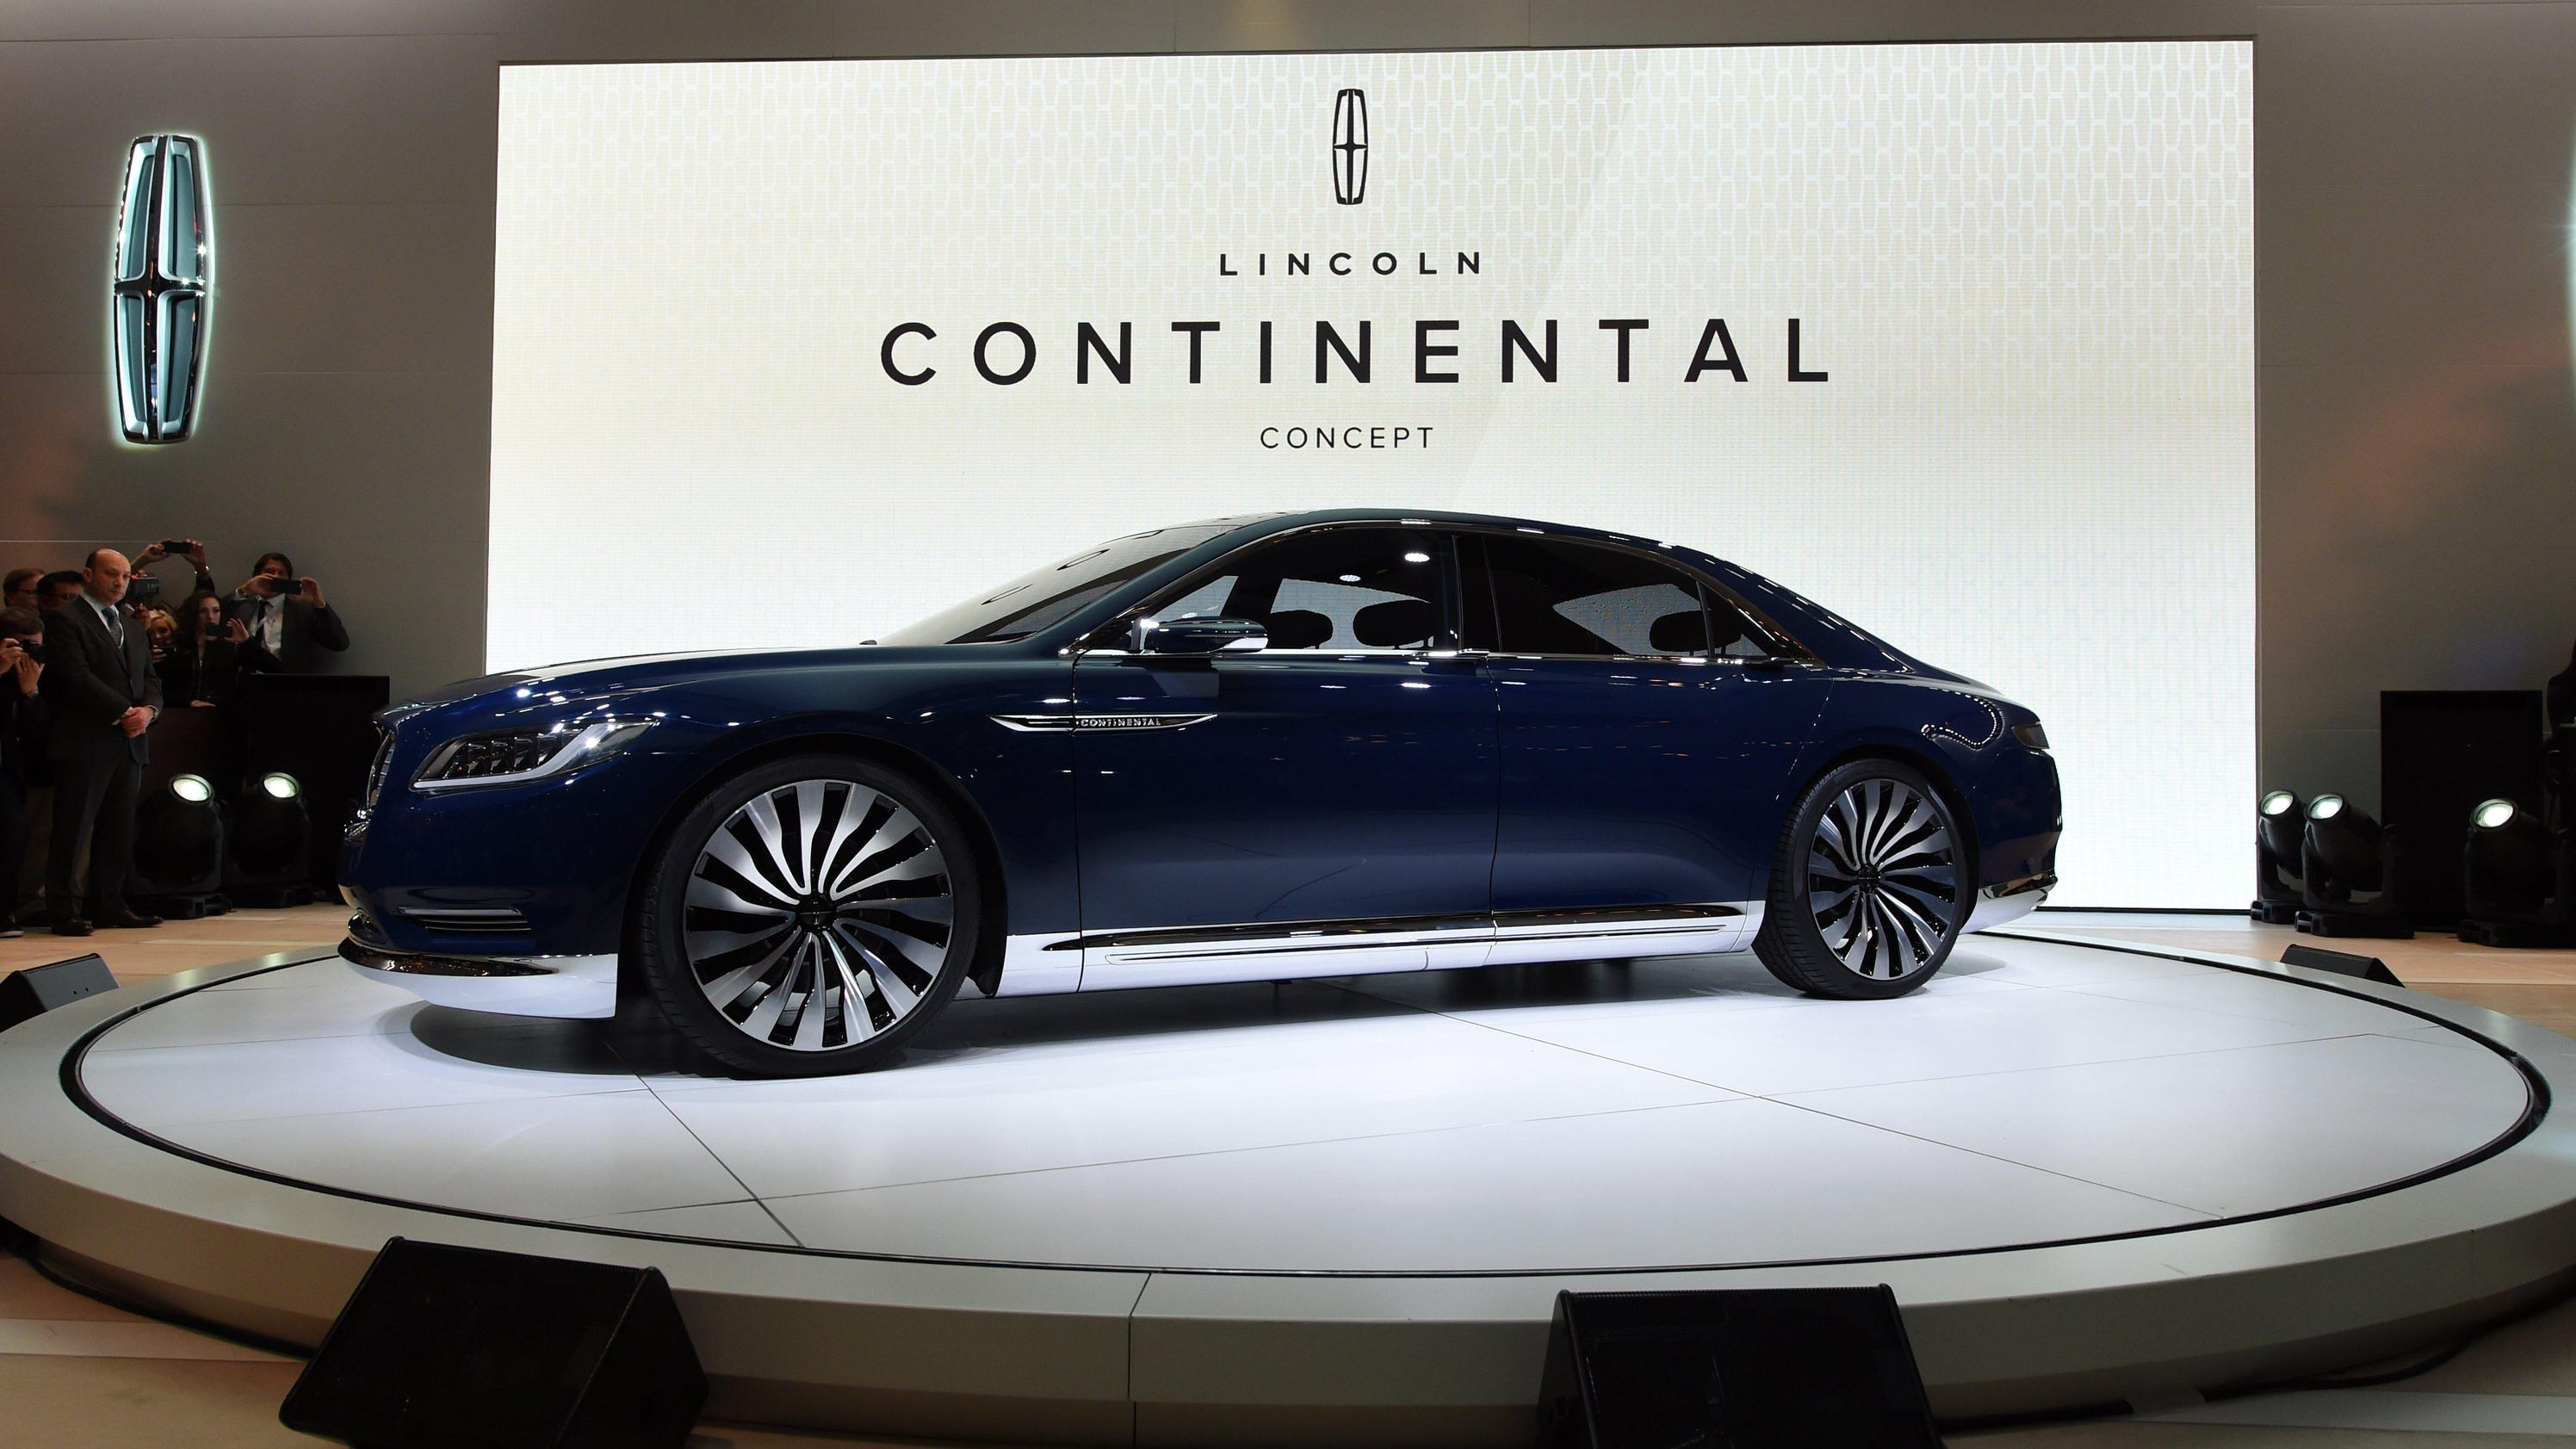 B9318097540Z.1_20150715212349_000_GOHBC0VGB.1-0 Outstanding Lincoln Continental New York Auto Show Cars Trend